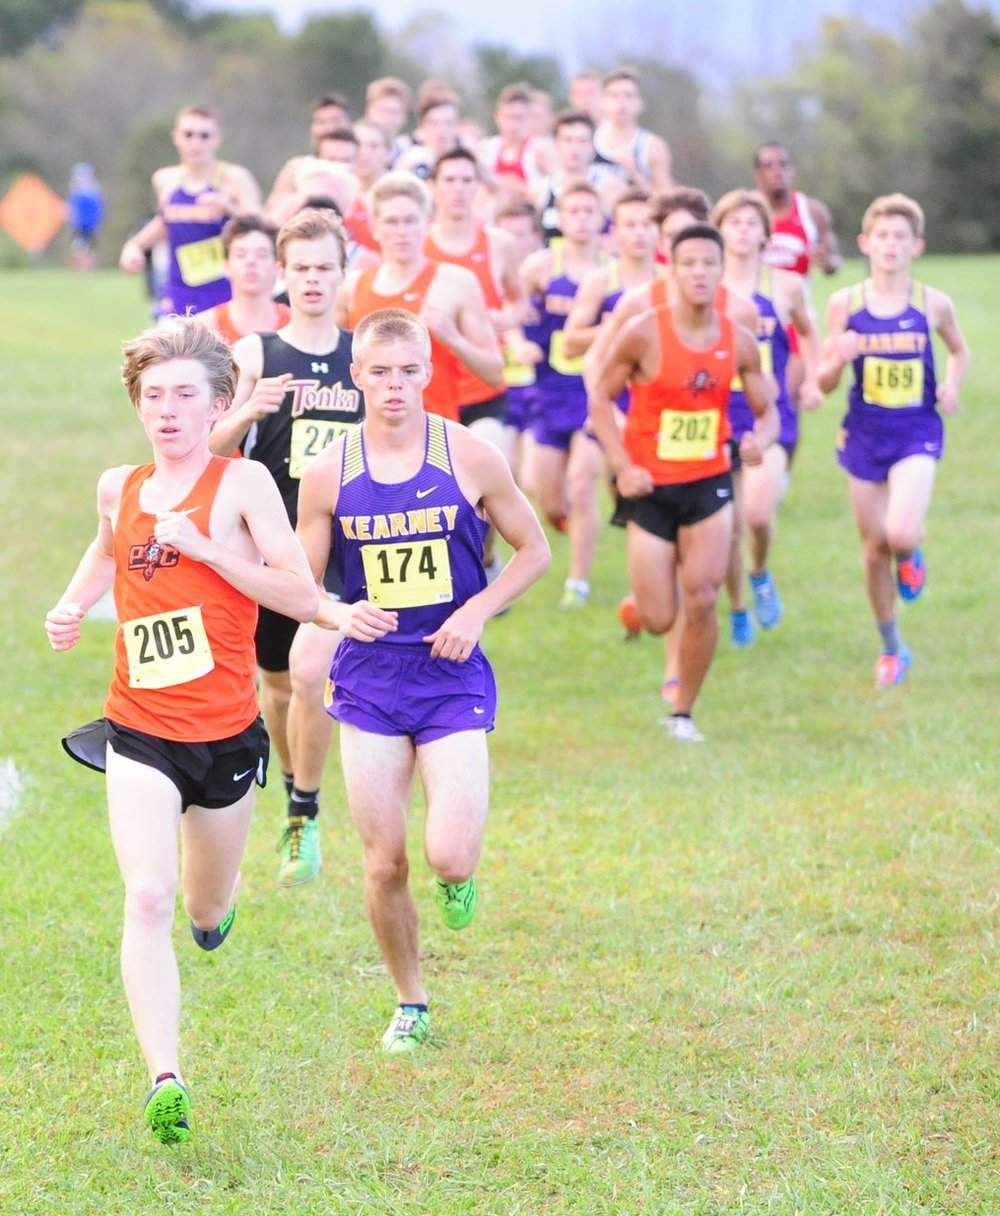 NICK INGRAM/Citizen photo Platte County junior Jackson Letcher leads the pack at the start of the Suburban Conference Blue Division Championships on Saturday, Oct. 7 at Jesse James Fairgrounds in Kearney, Mo.